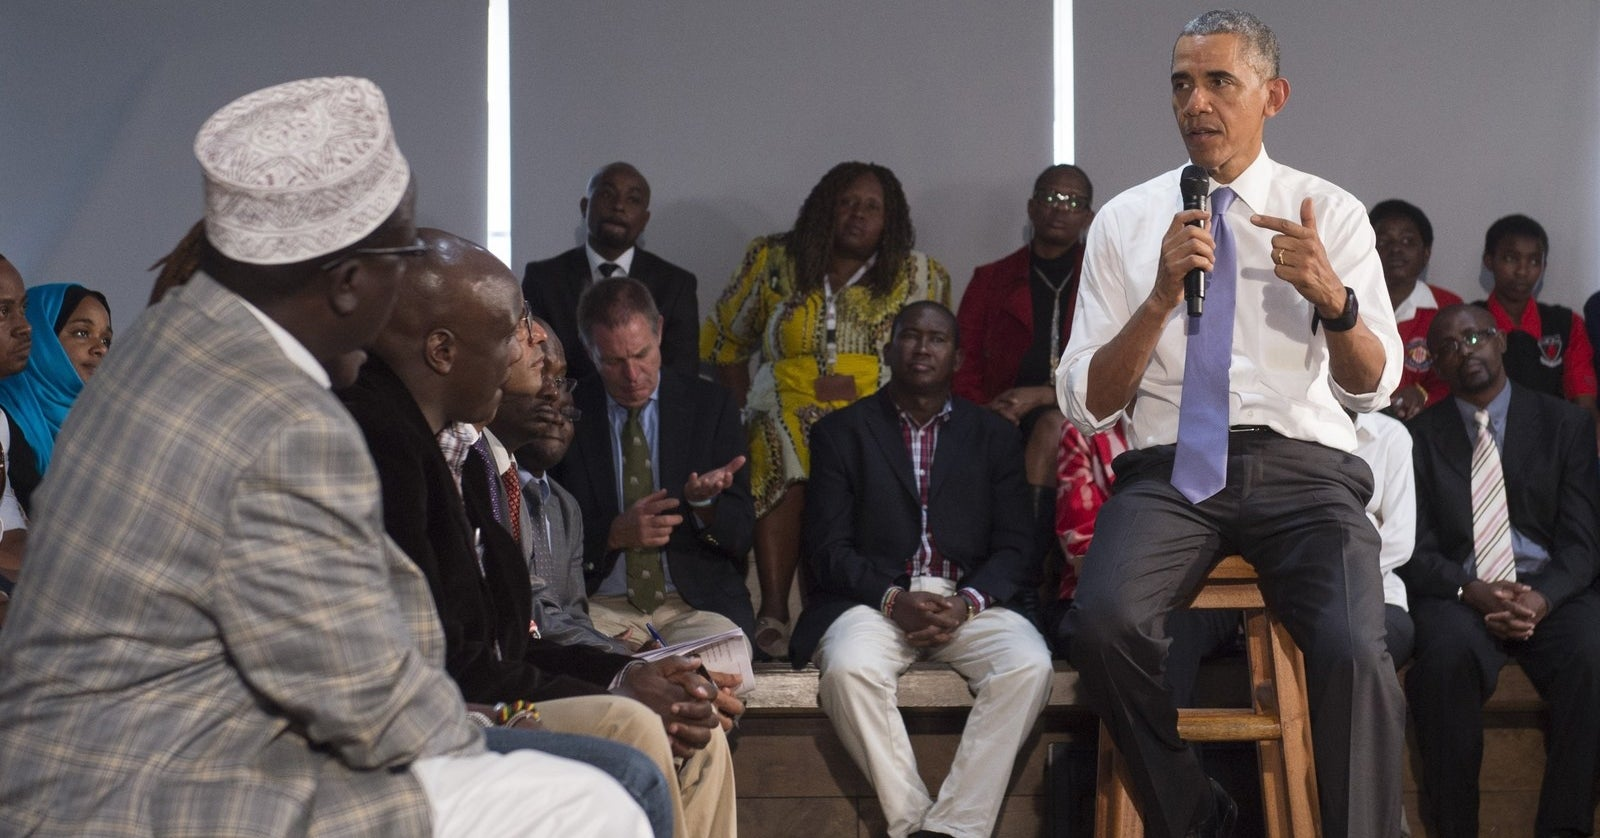 Obama Will Visit Kenya For The First Time Since Leaving The White House